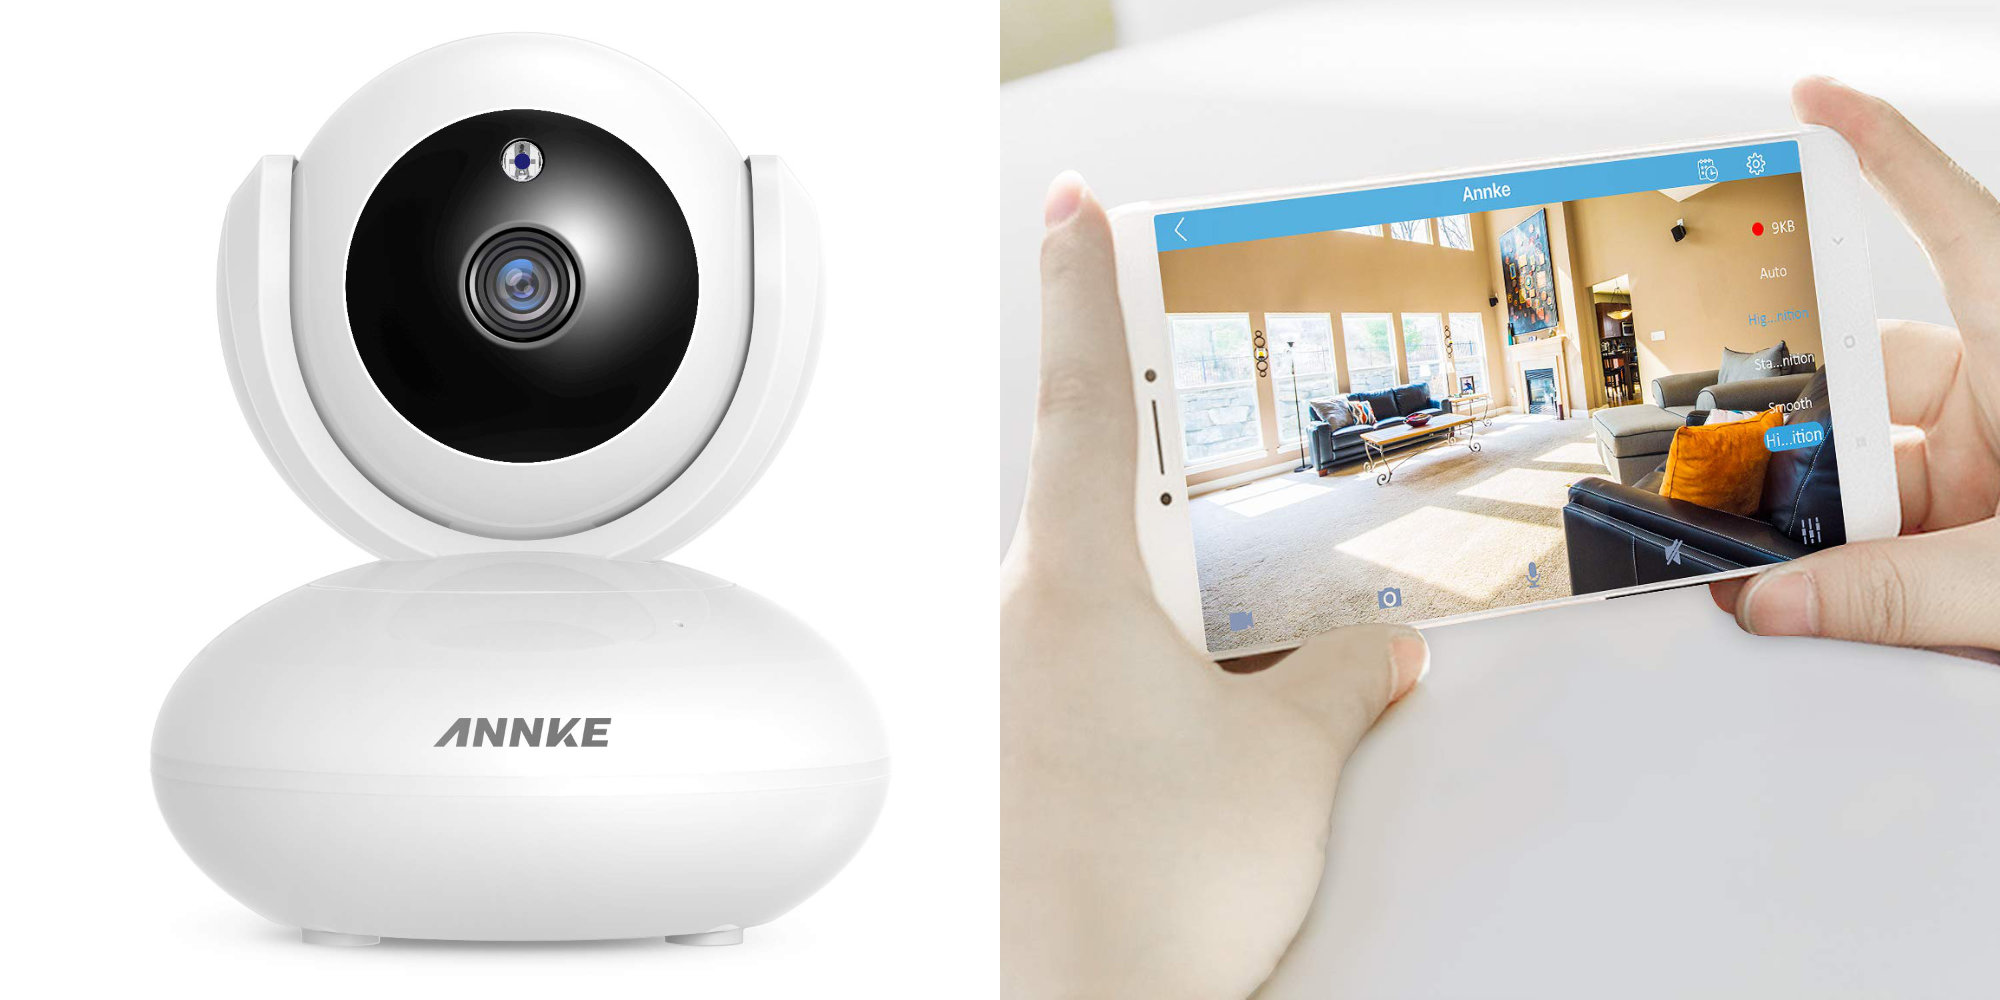 Pay less than Wyze w/ Annke's 1080p Pan & Tilt Camera at $24 shipped